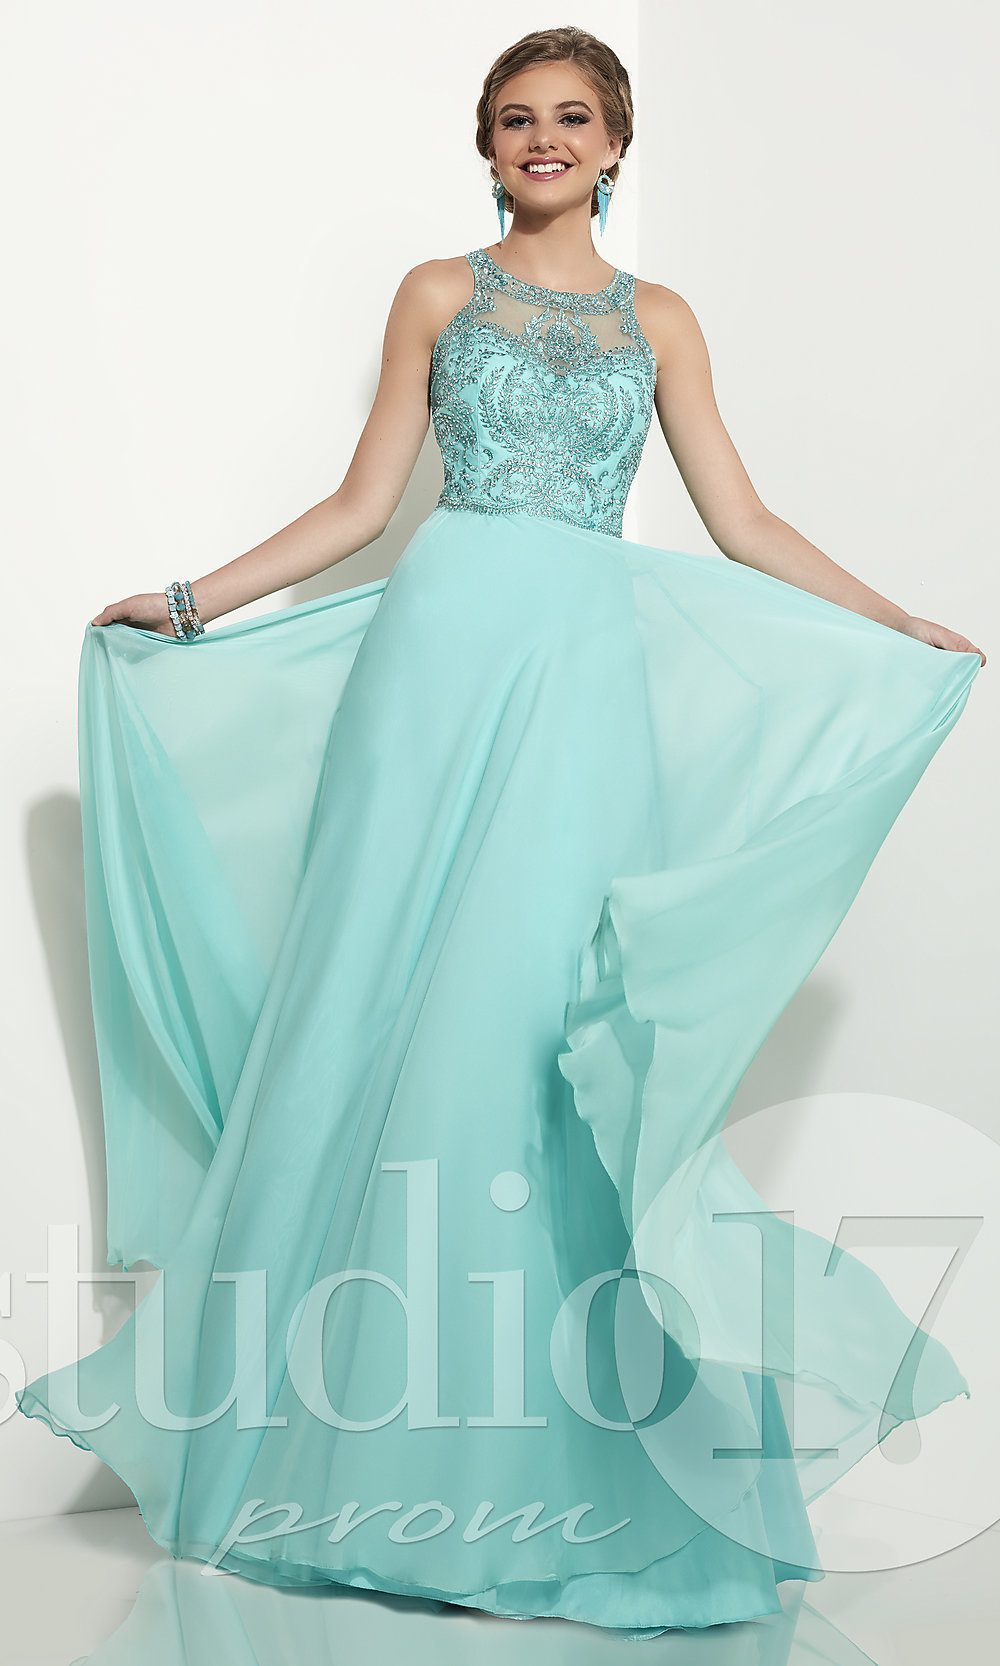 8fb52c43bde Long Prom Dress by Studio 17 with Rhinestone Accented